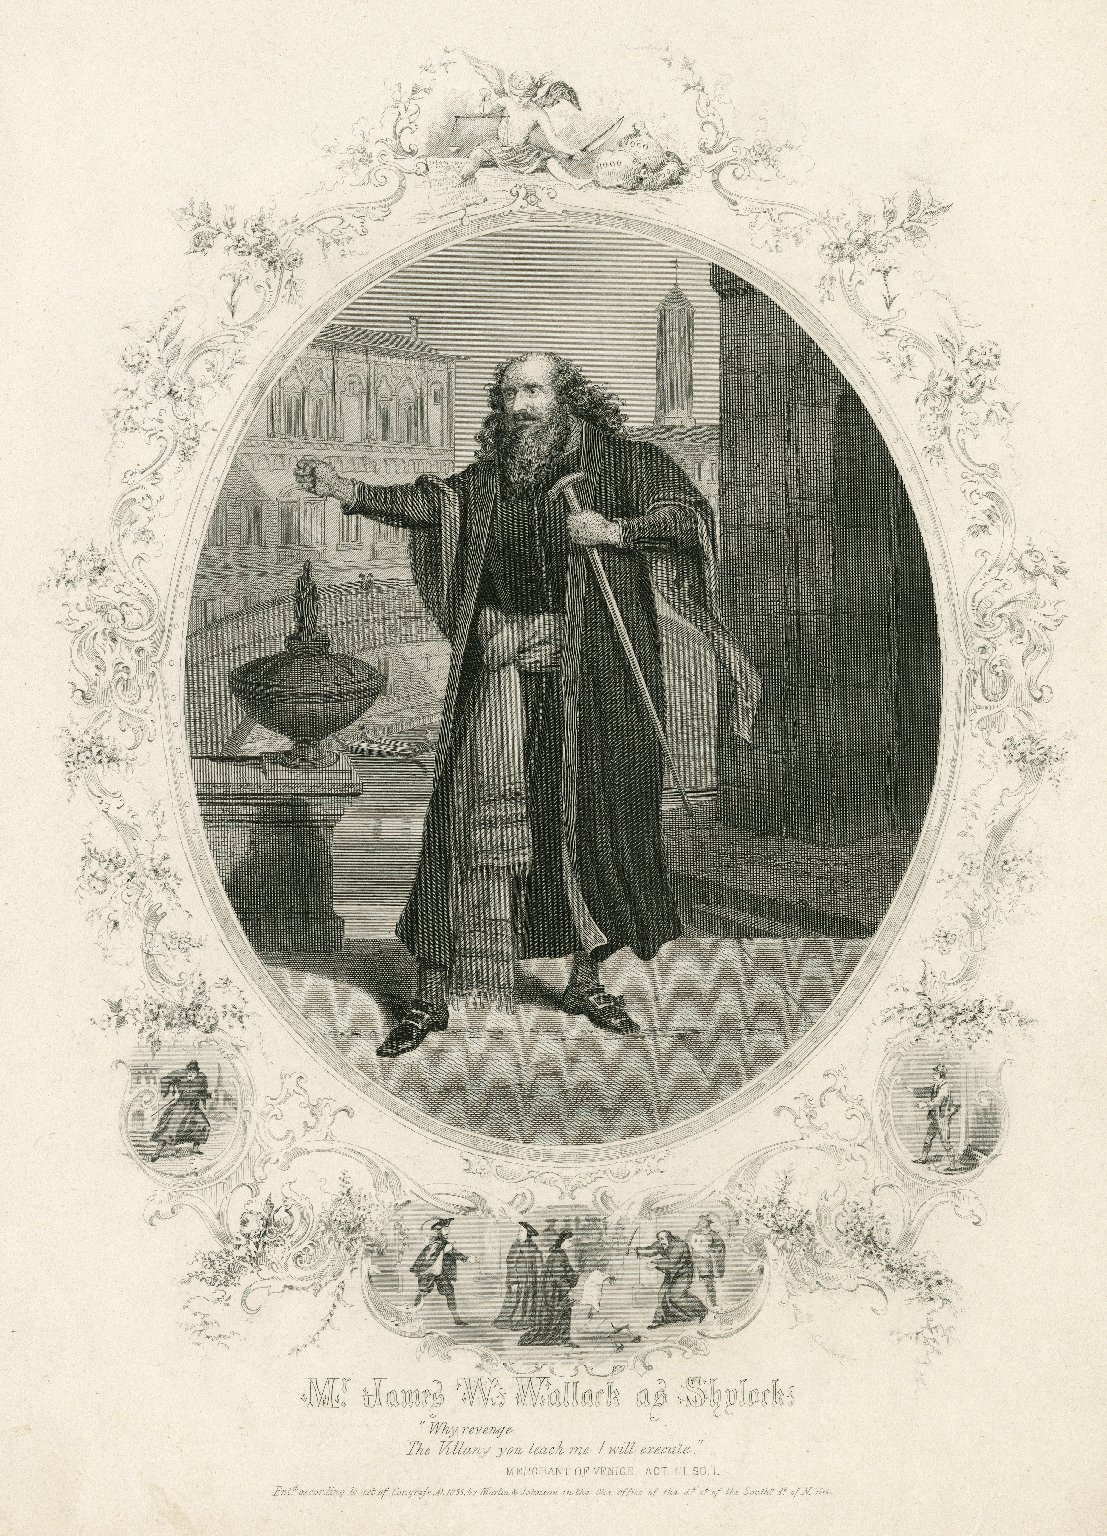 <b>Shylock, 1855</b>     	</br>Actor James Wallack as Shylock in The Merchant of Venice, 1855</br><br/><b>Source: </b><i>Mr. James W. Wallack as Shylock (Call number: ART File W195.5 no.9 copy 1), 1855, olger Digital Image Collection, University of Cincinnati Libraries Digital Collections, University of Cincinnati, http://digproj.libraries.uc.edu:8180/luna/servlet/s/gsz682</i>